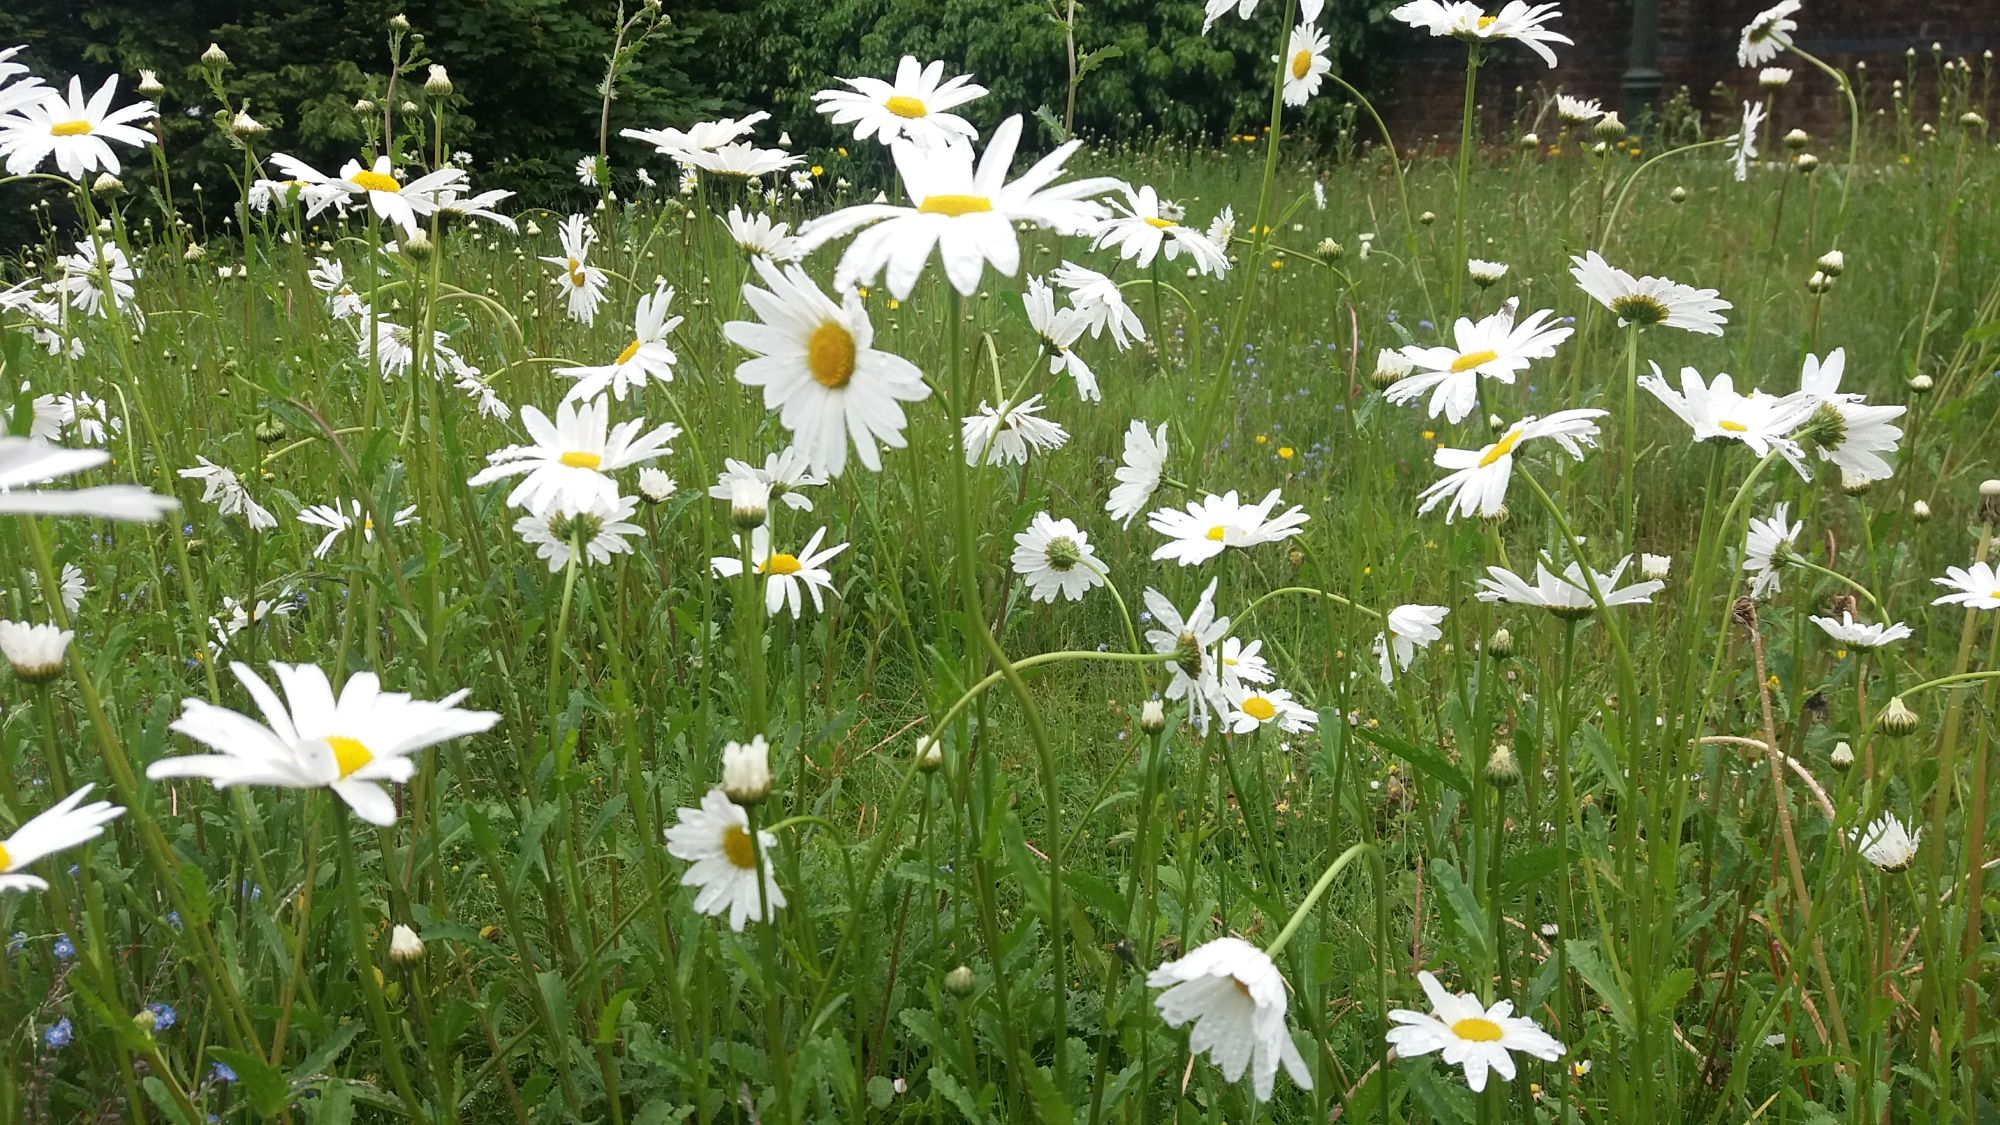 wildflower meadow  in limited palette of whites and yellows